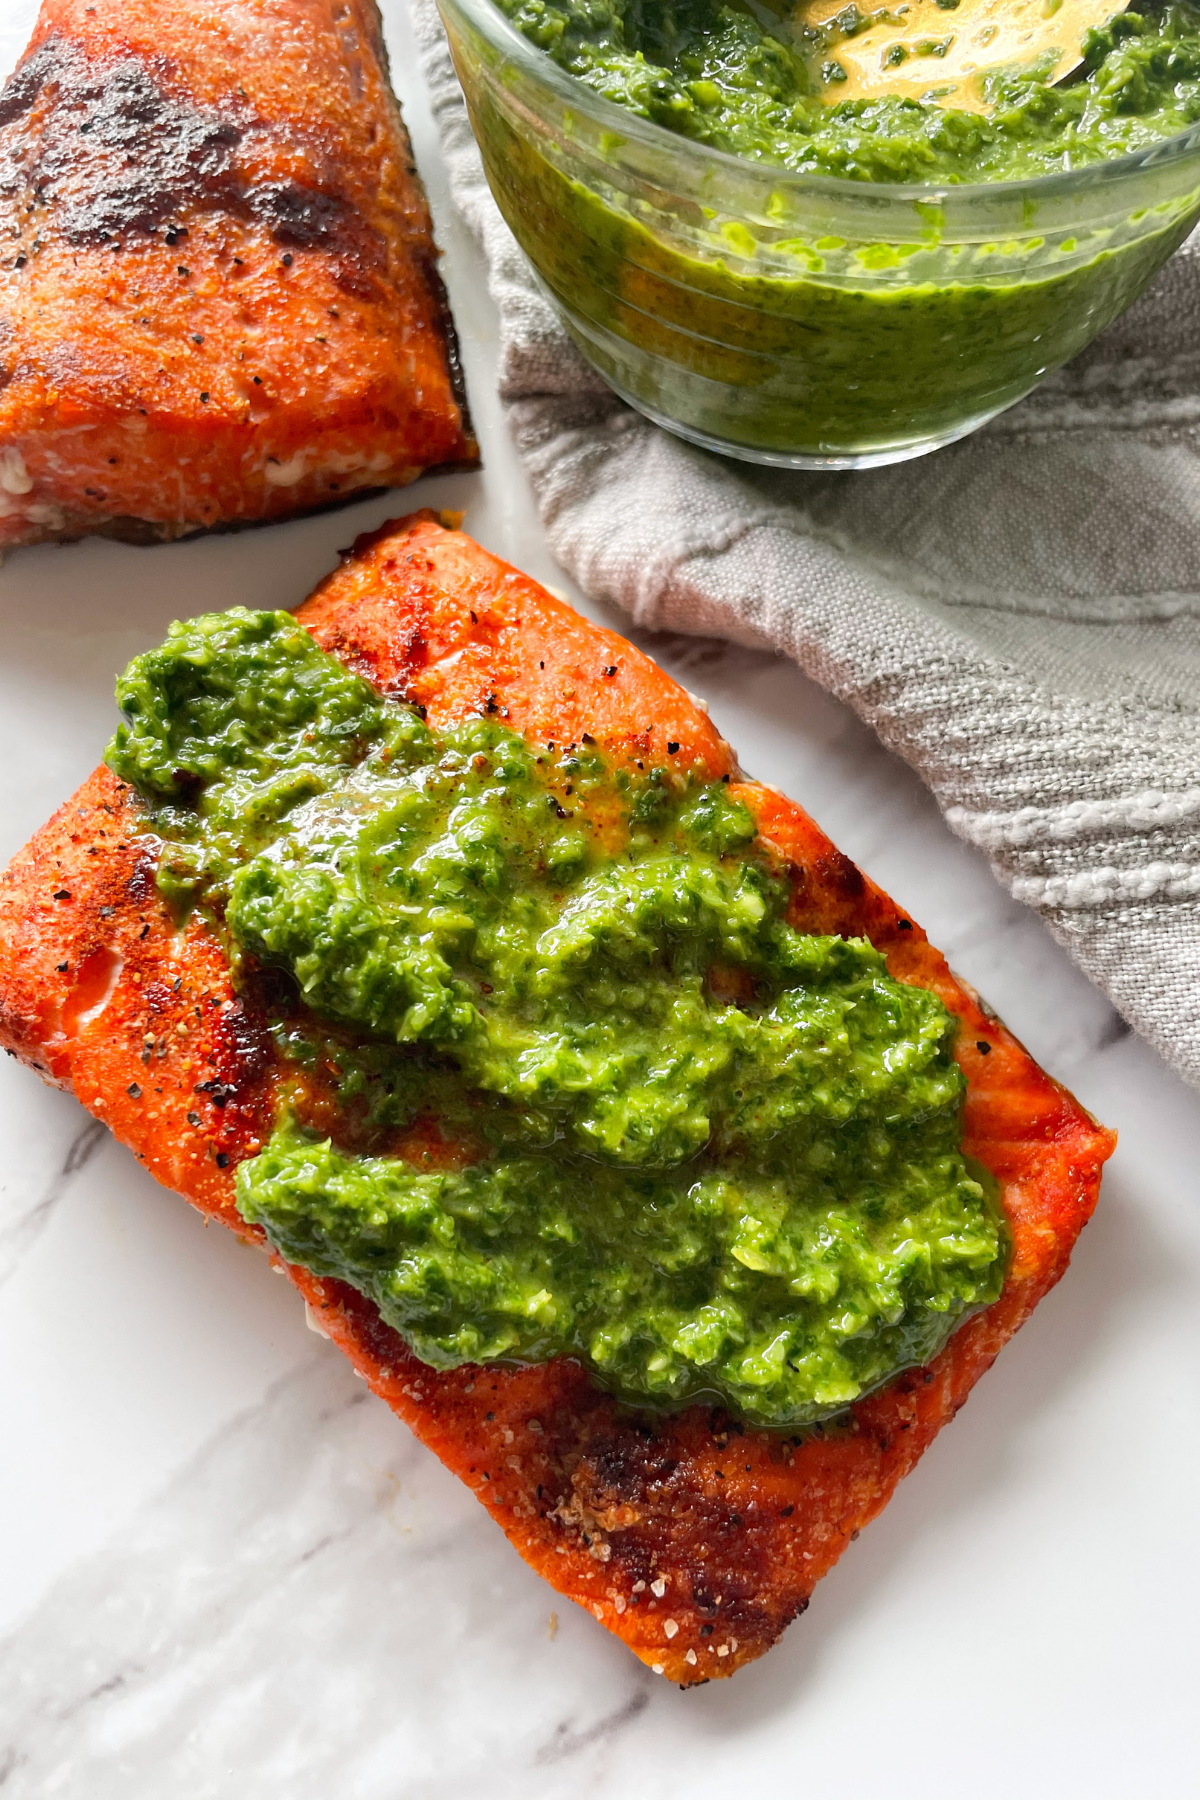 cooked salmon with cilantro sauce on top